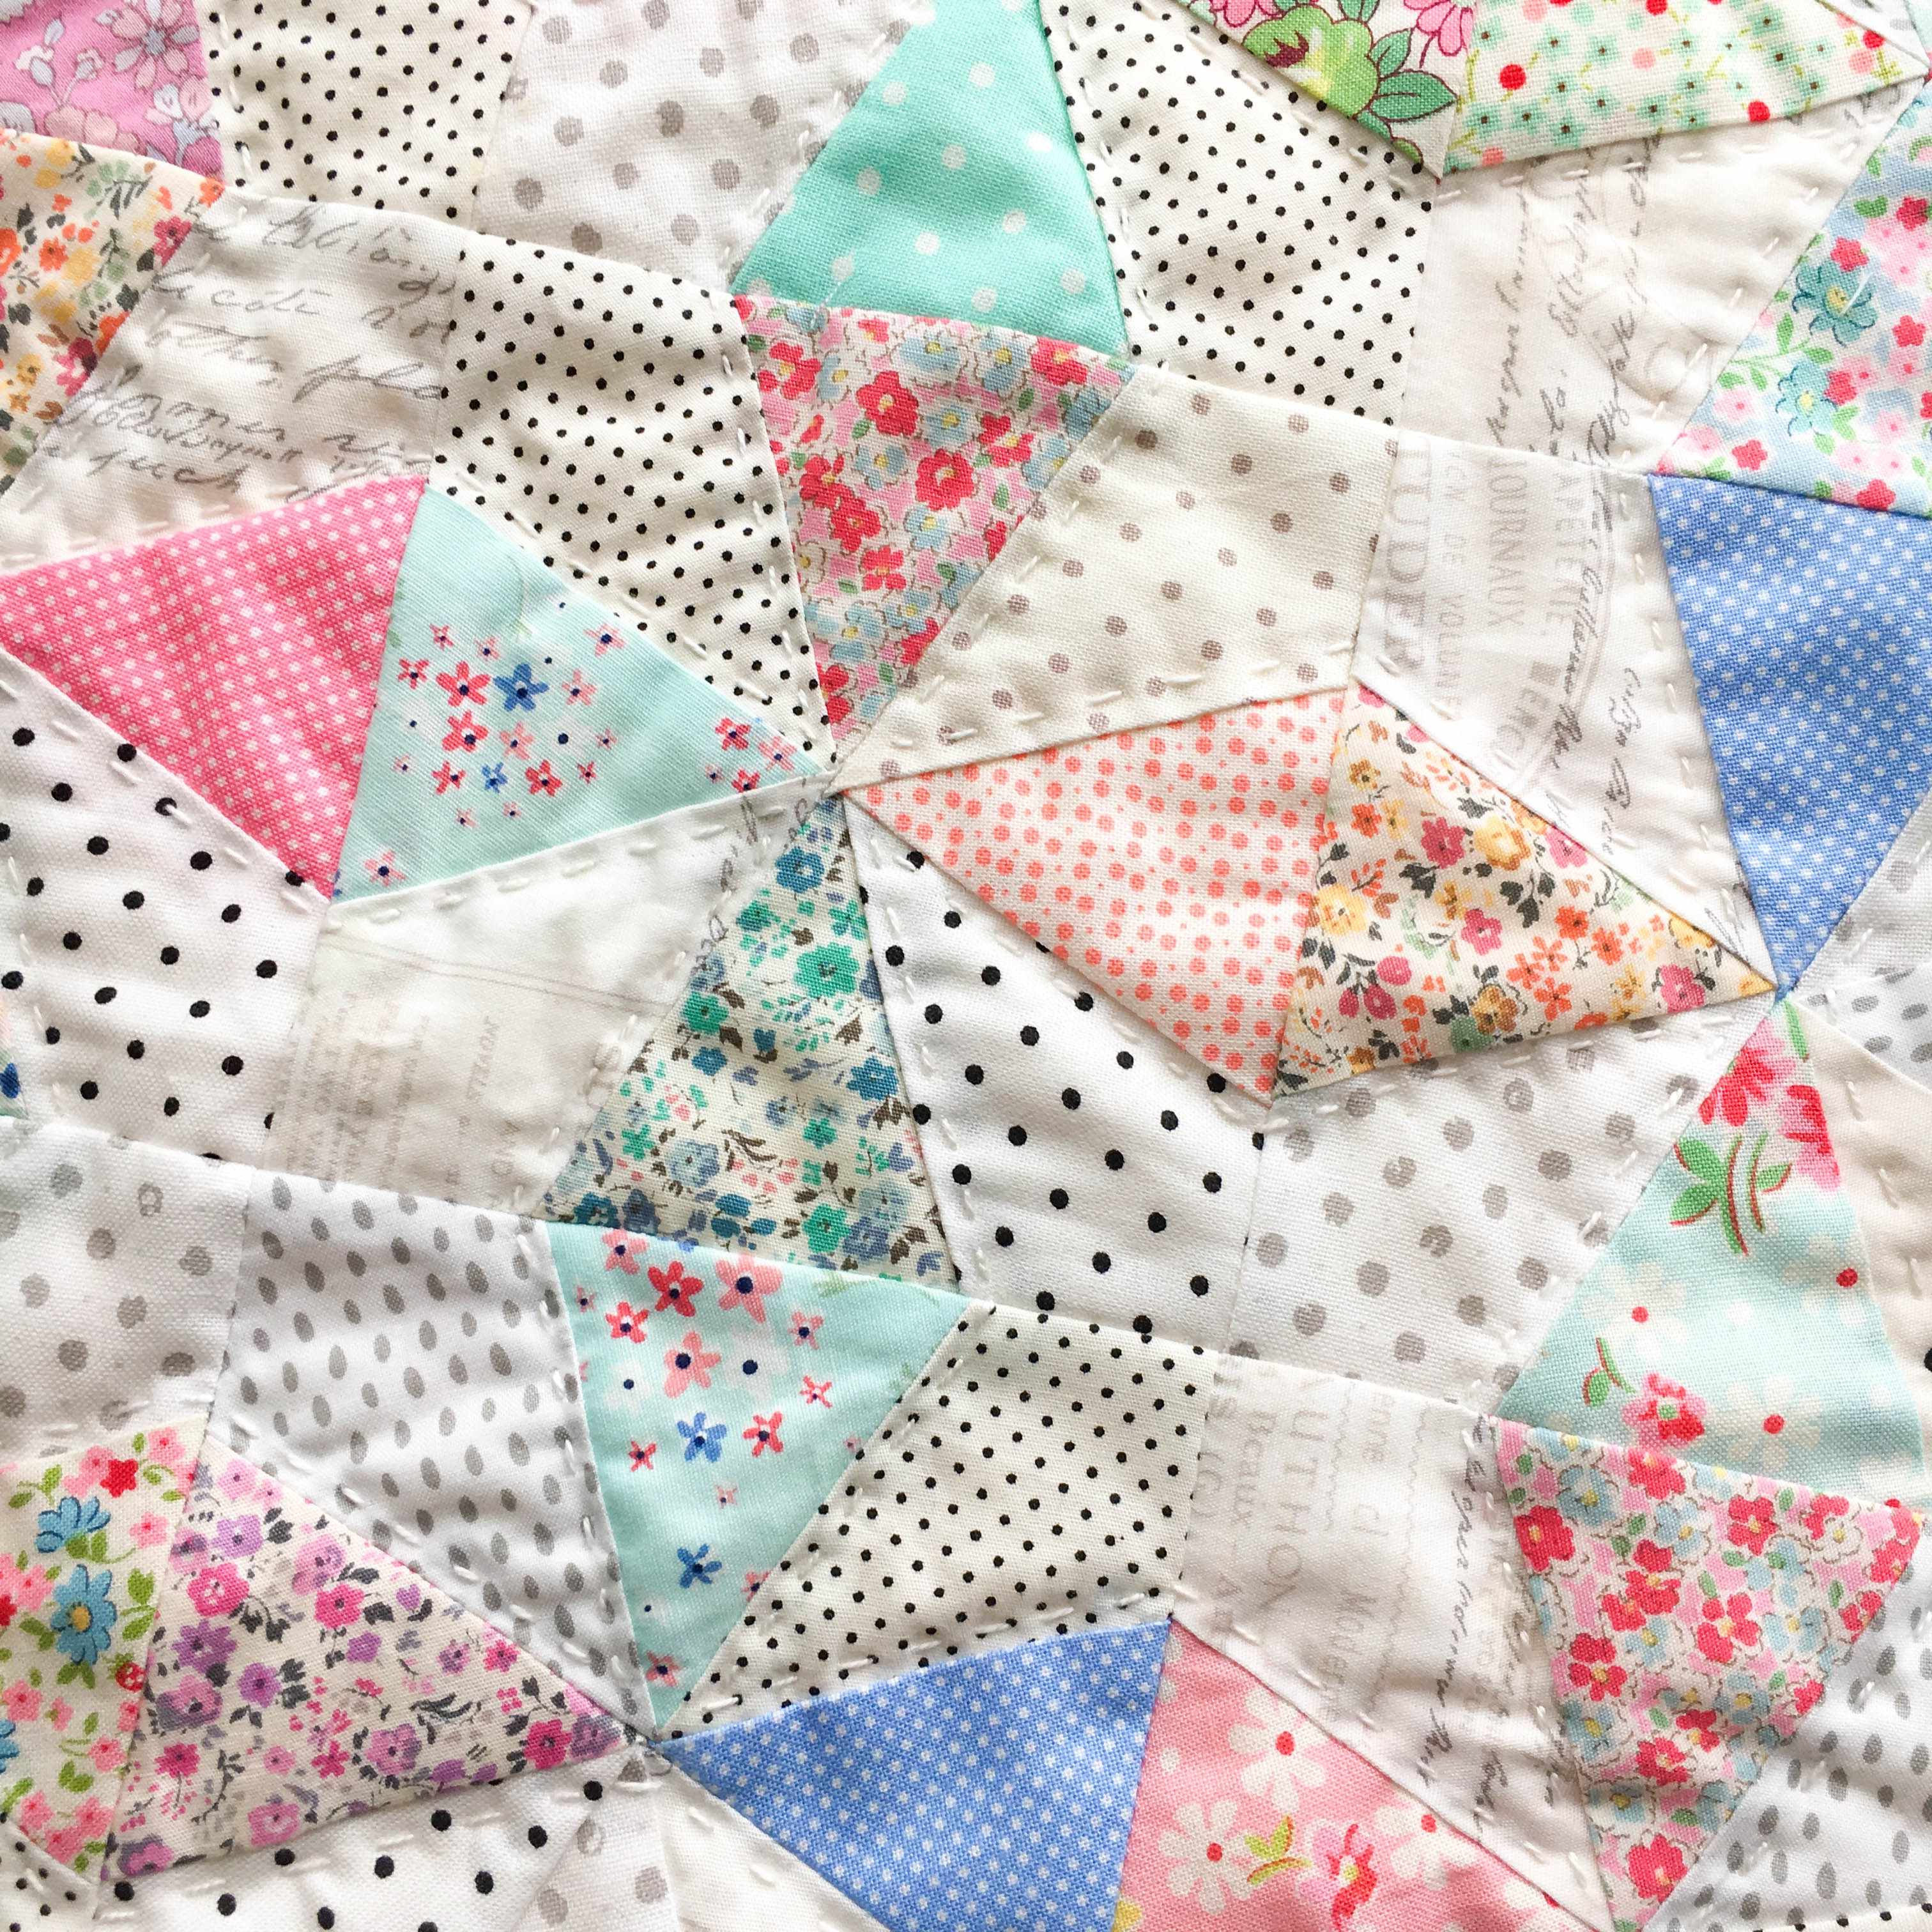 can tutorial waiting video find modern had quilt of here i been with strip know as quilting lace go have made the which a below you lot so this image for privilege